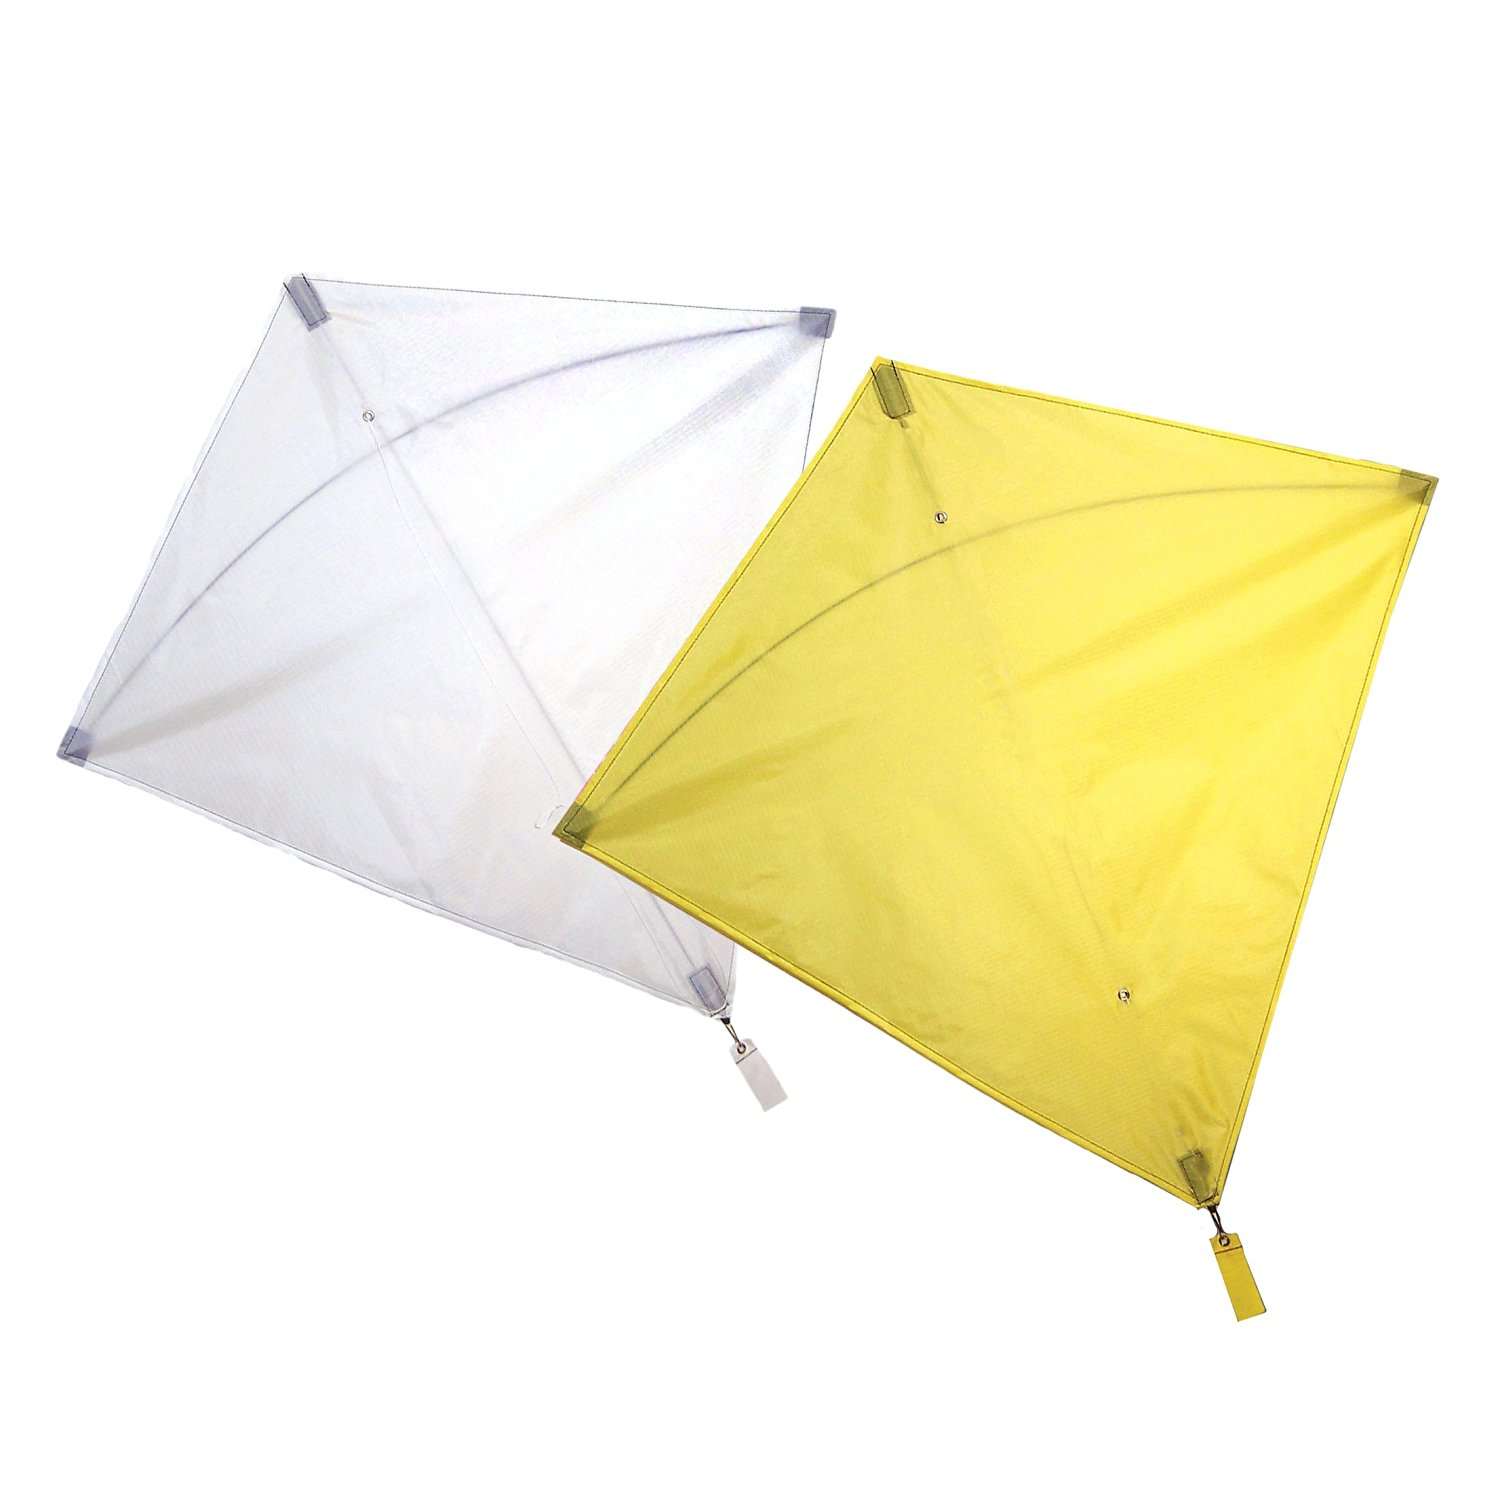 Maven Gifts: In The Breeze 2-Pack Kite Bundle – 30-Inch Yellow Colorfly Diamond Kite with 30-Inch White Colorfly Diamond Kite – Great for Beginners and Kids